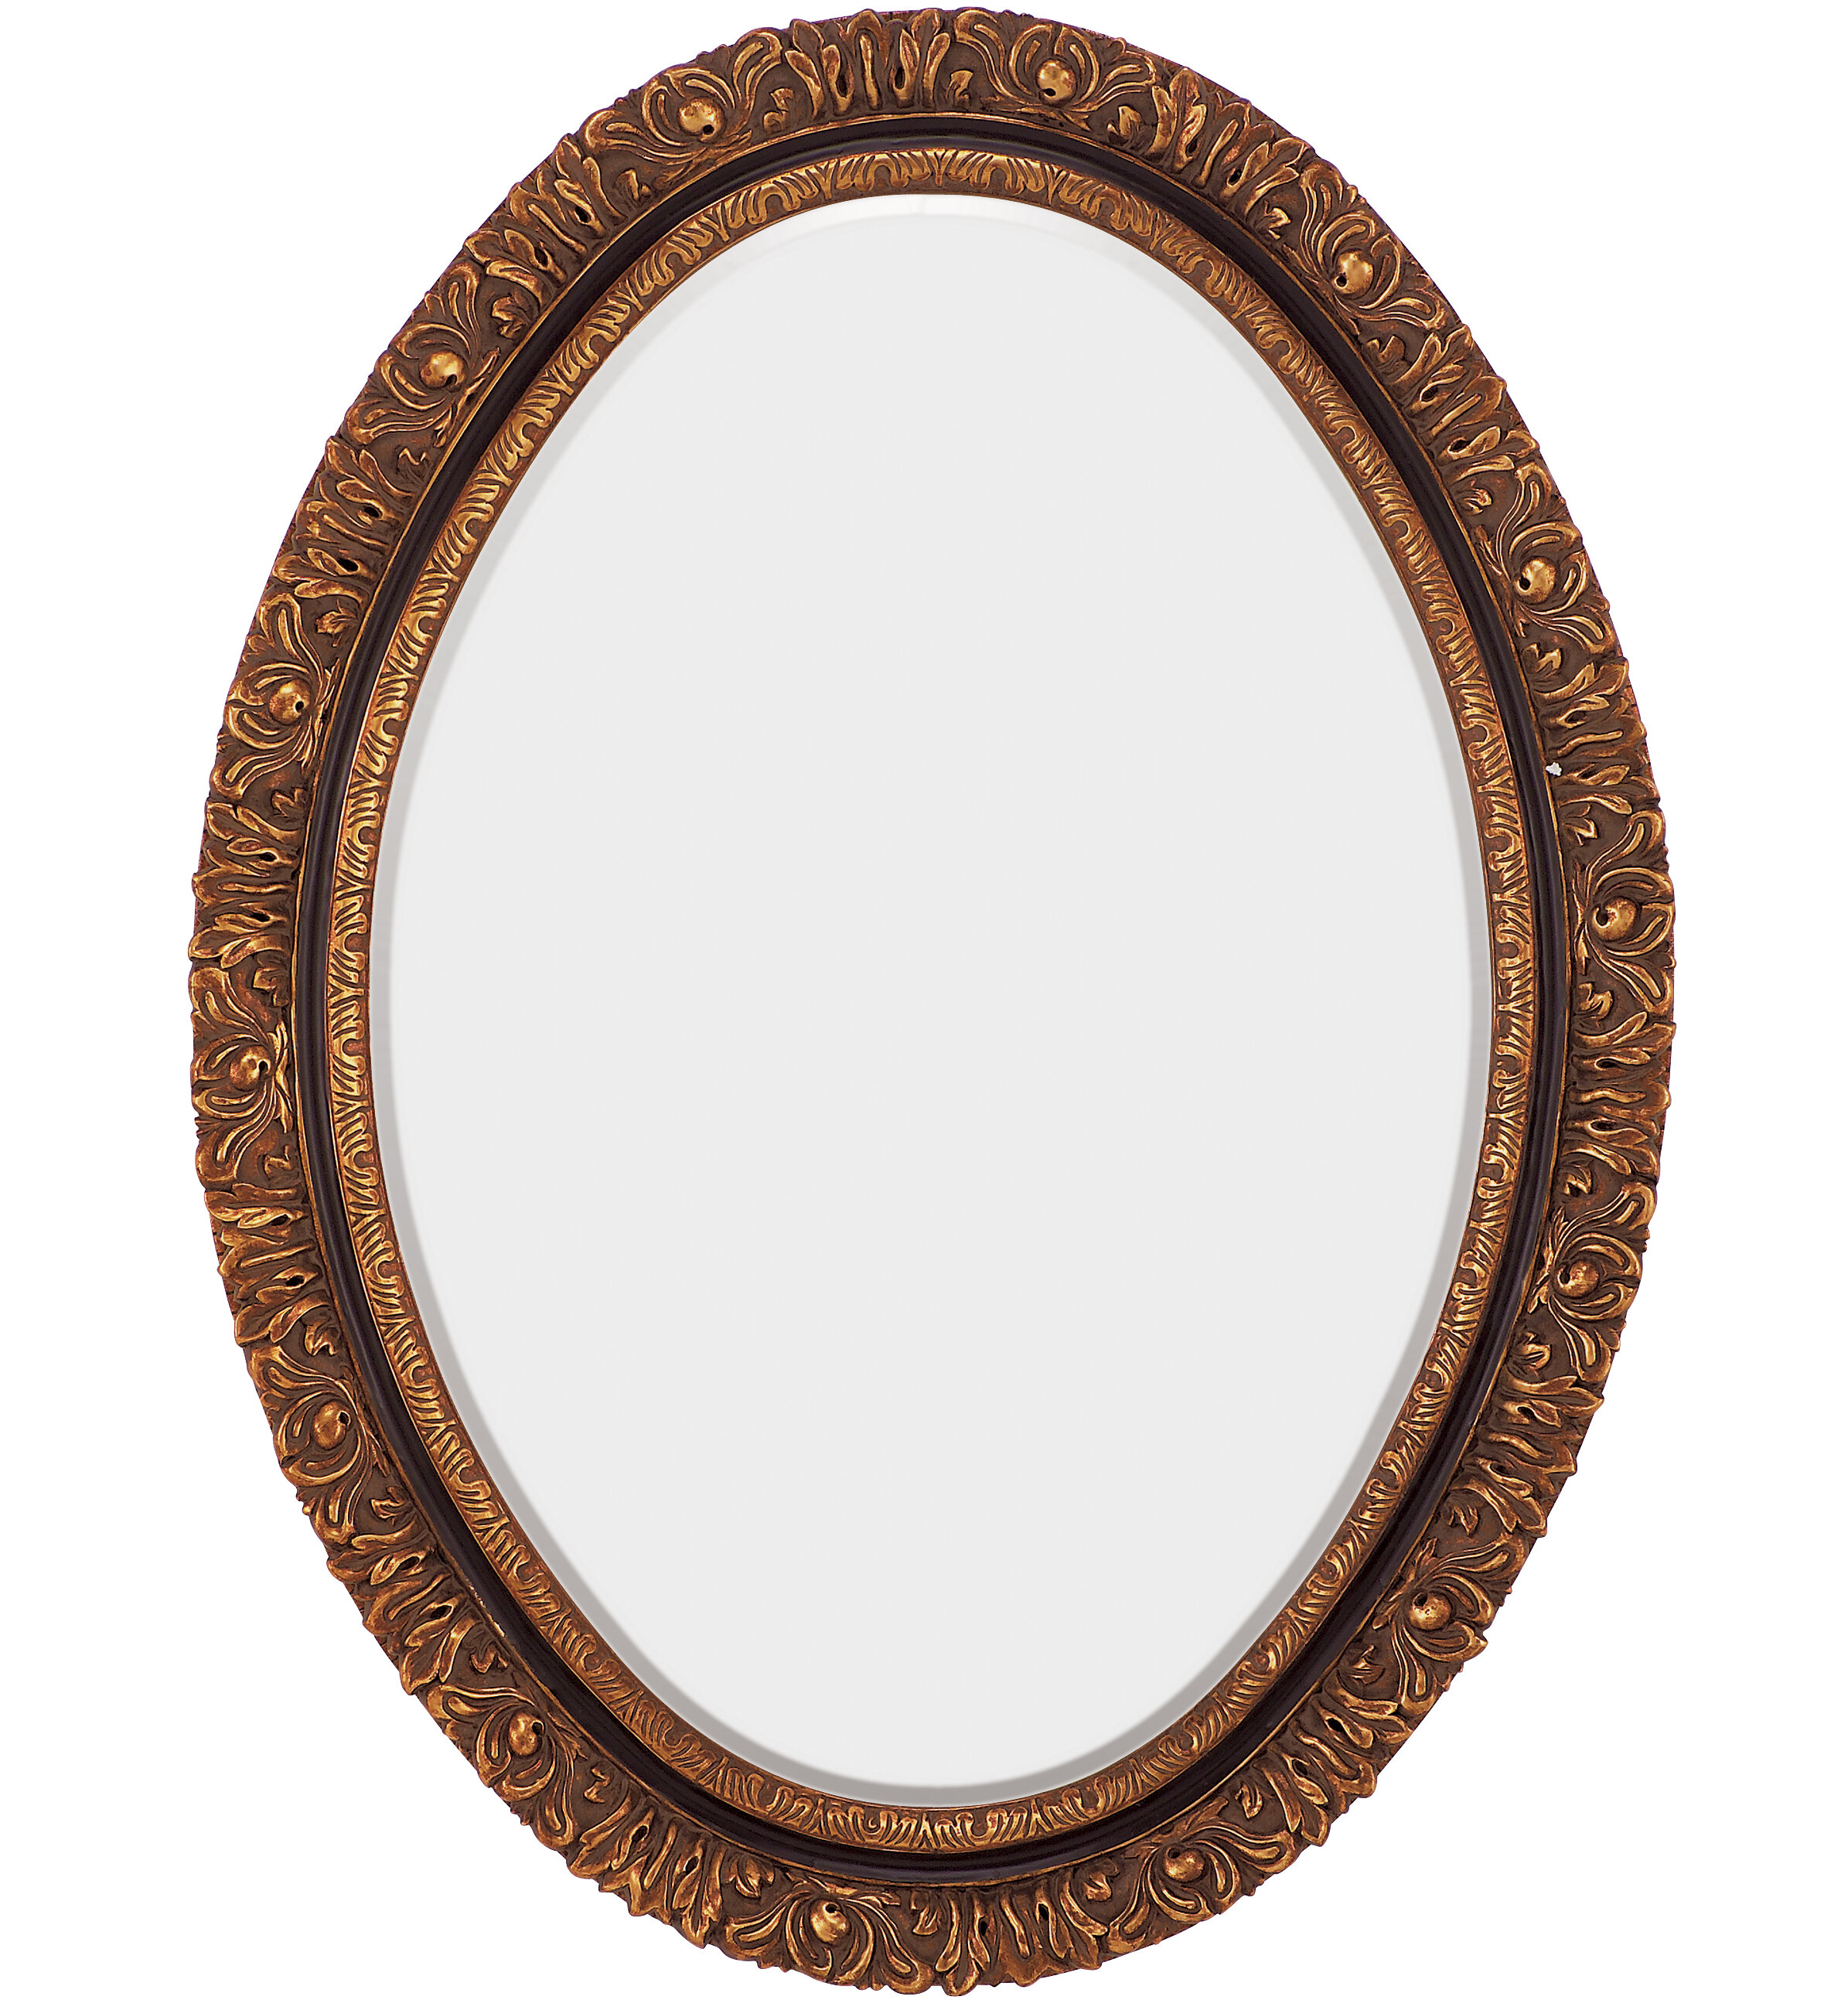 Majestic Mirror Traditional Oval Gold and Black Antique Beveled ...